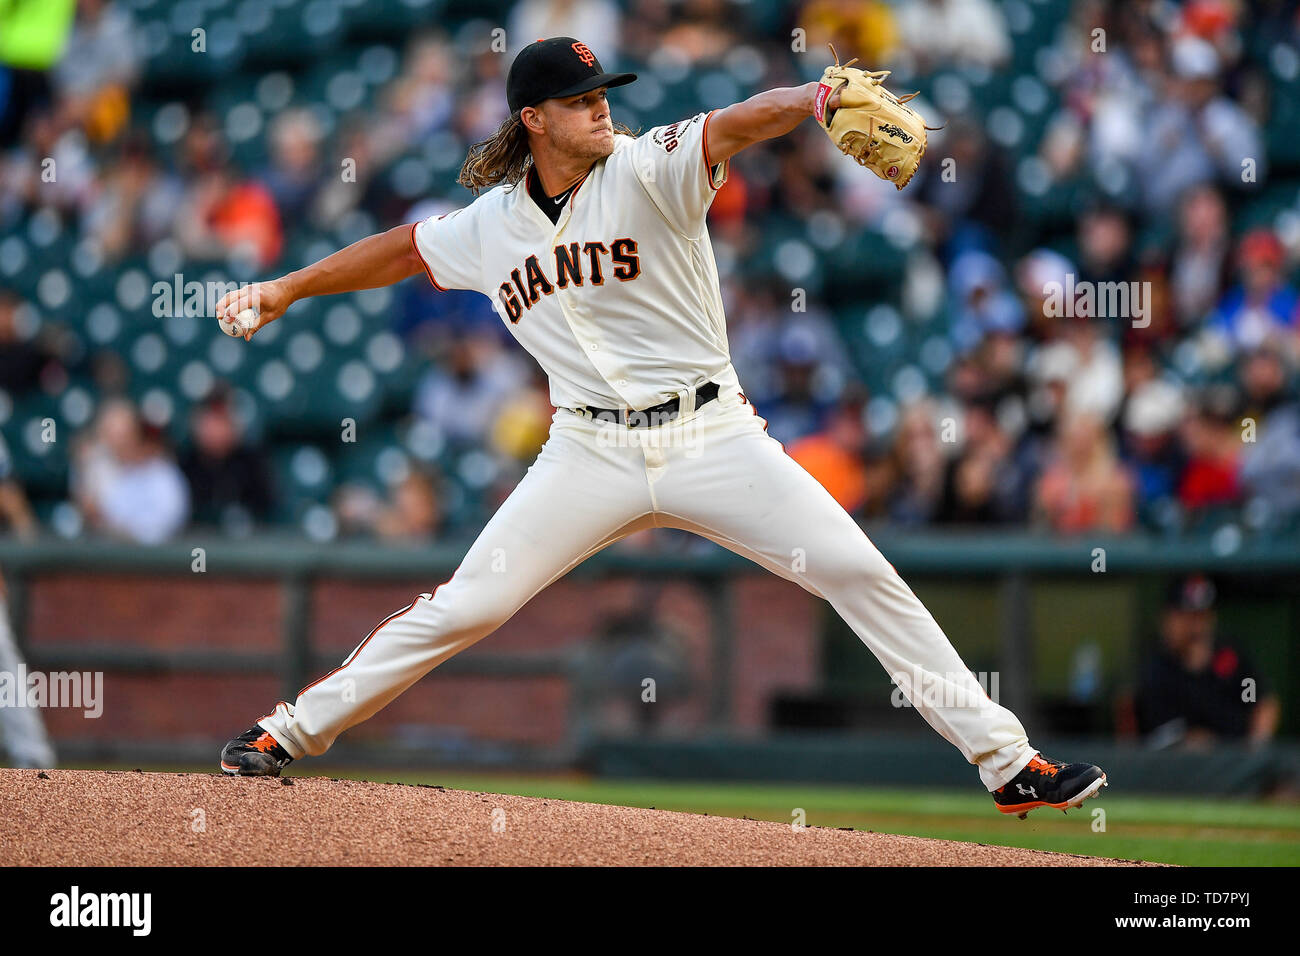 San Francisco, California, USA. 12th June, 2019. San Francisco Giants starting pitcher Shaun Anderson (64) throw the opening pitch during the MLB game between the San Diego Padres and the San Francisco Giants at Oracle Park in San Francisco, California. Chris Brown/CSM/Alamy Live News - Stock Image